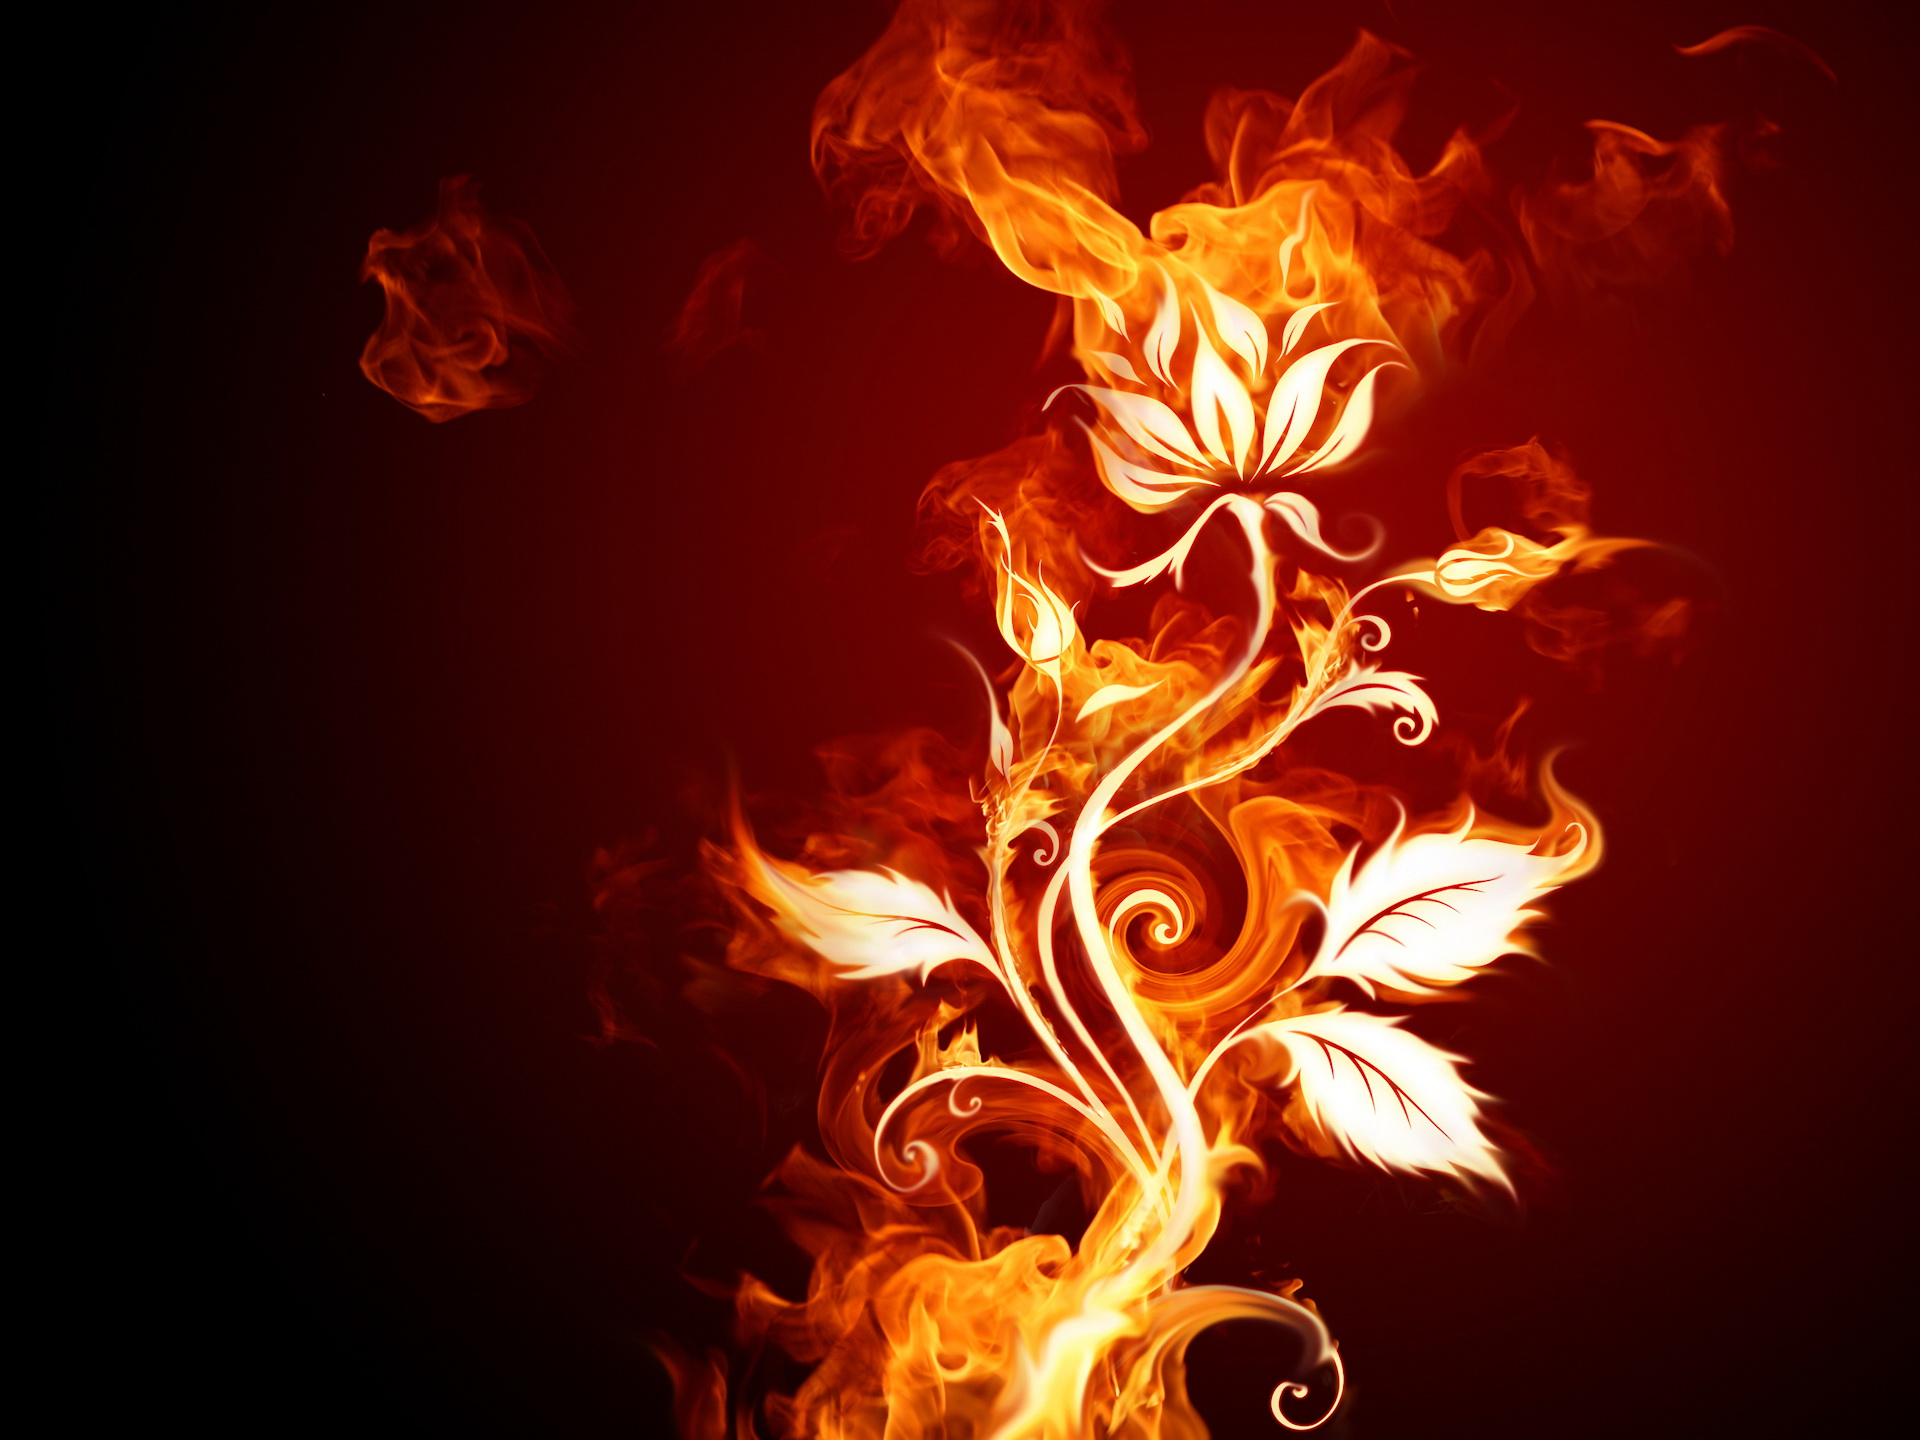 1920x1440 Fire flower desktop wallpapers and stock photos